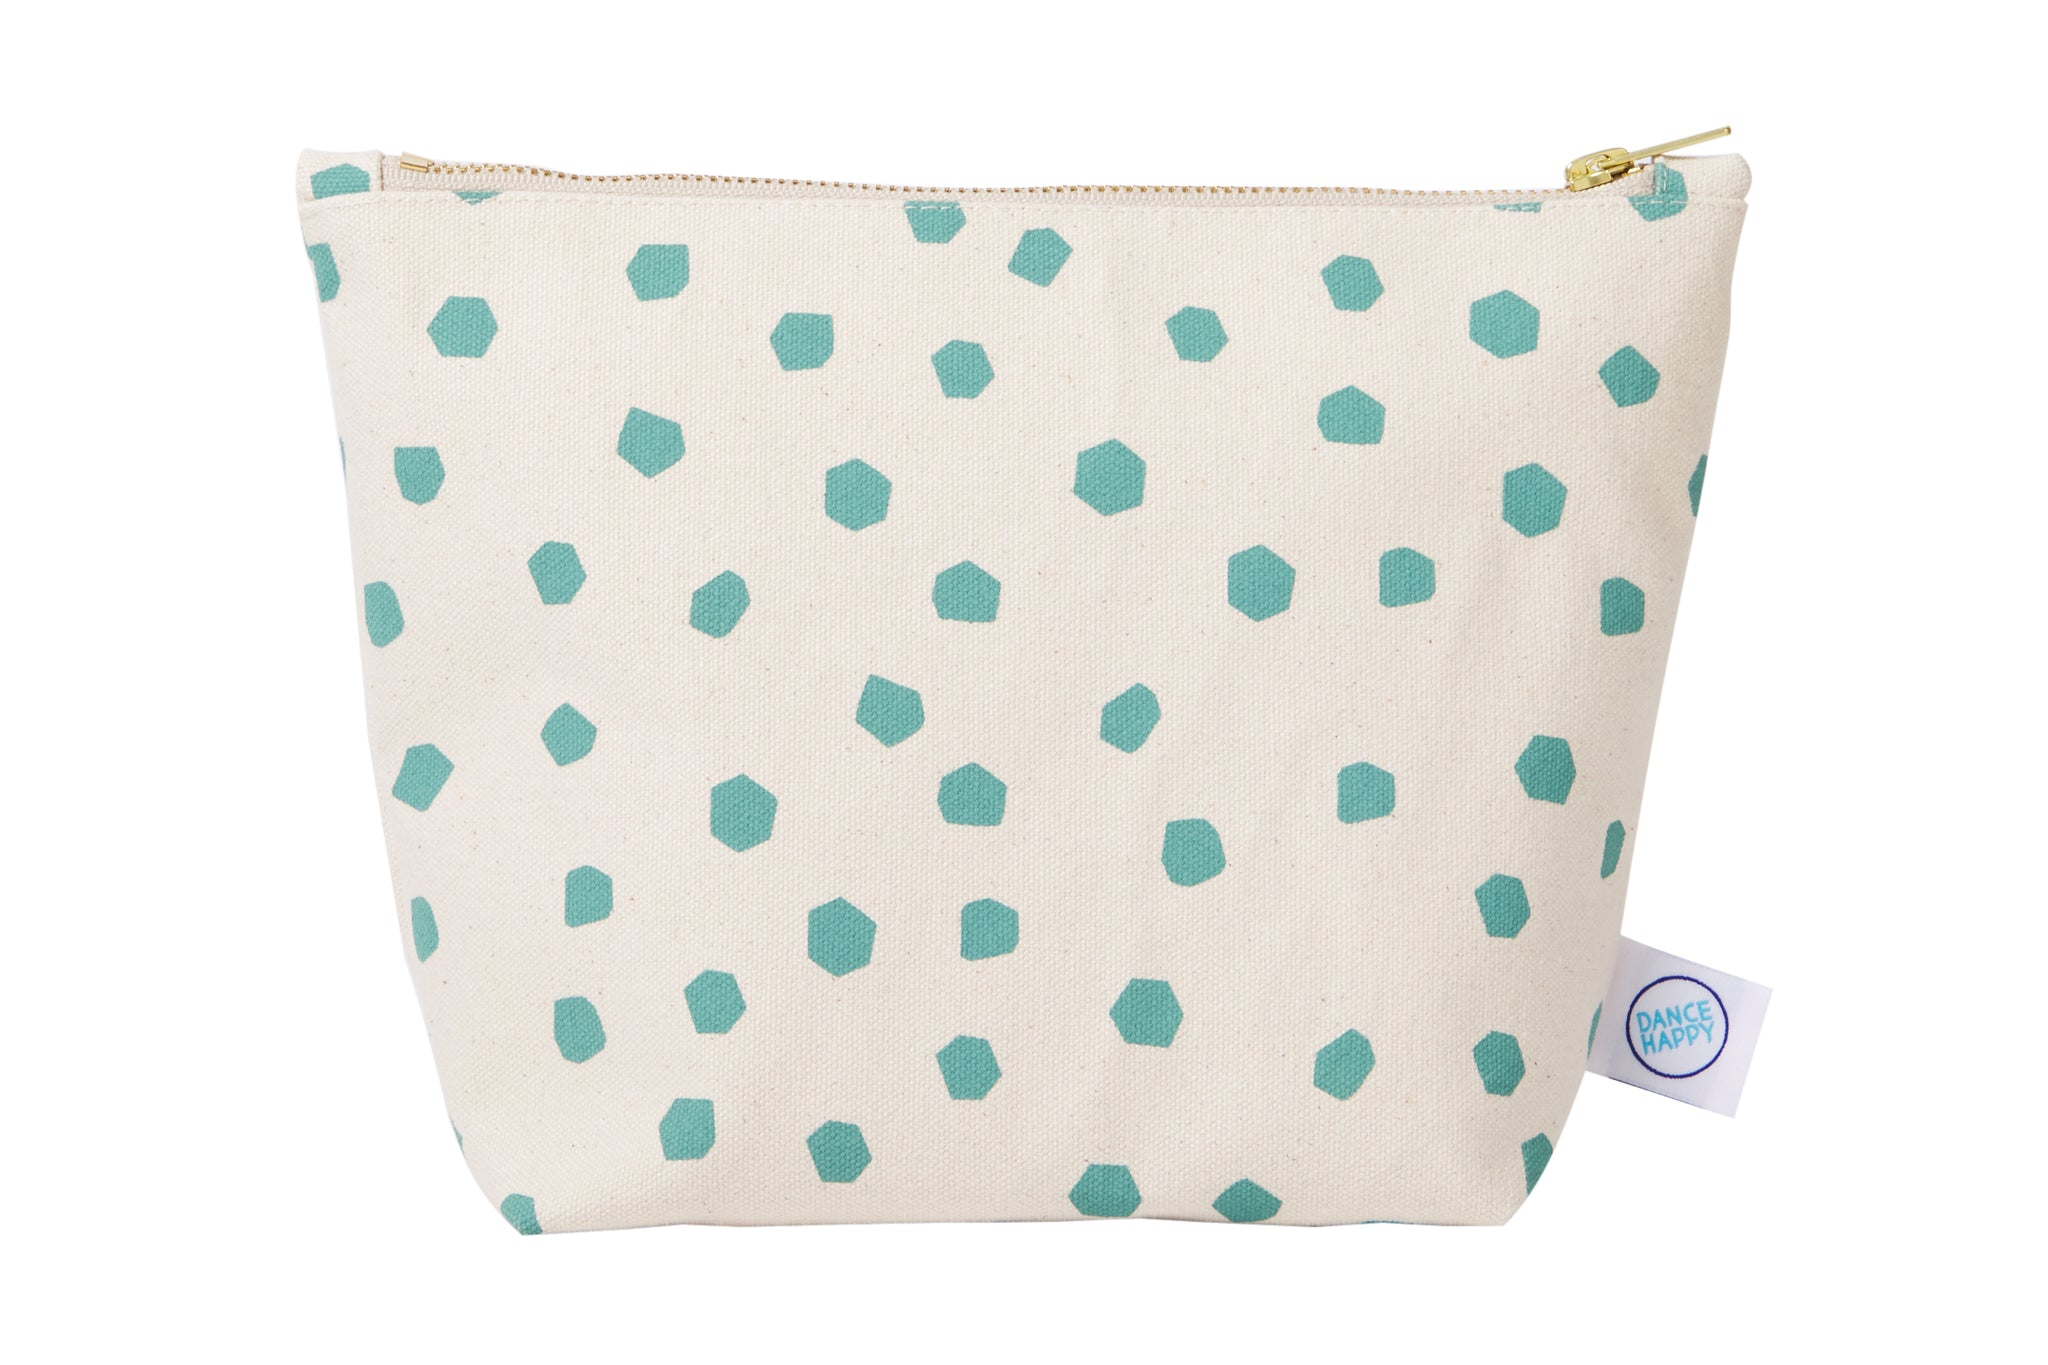 Speckled Zipper Bag